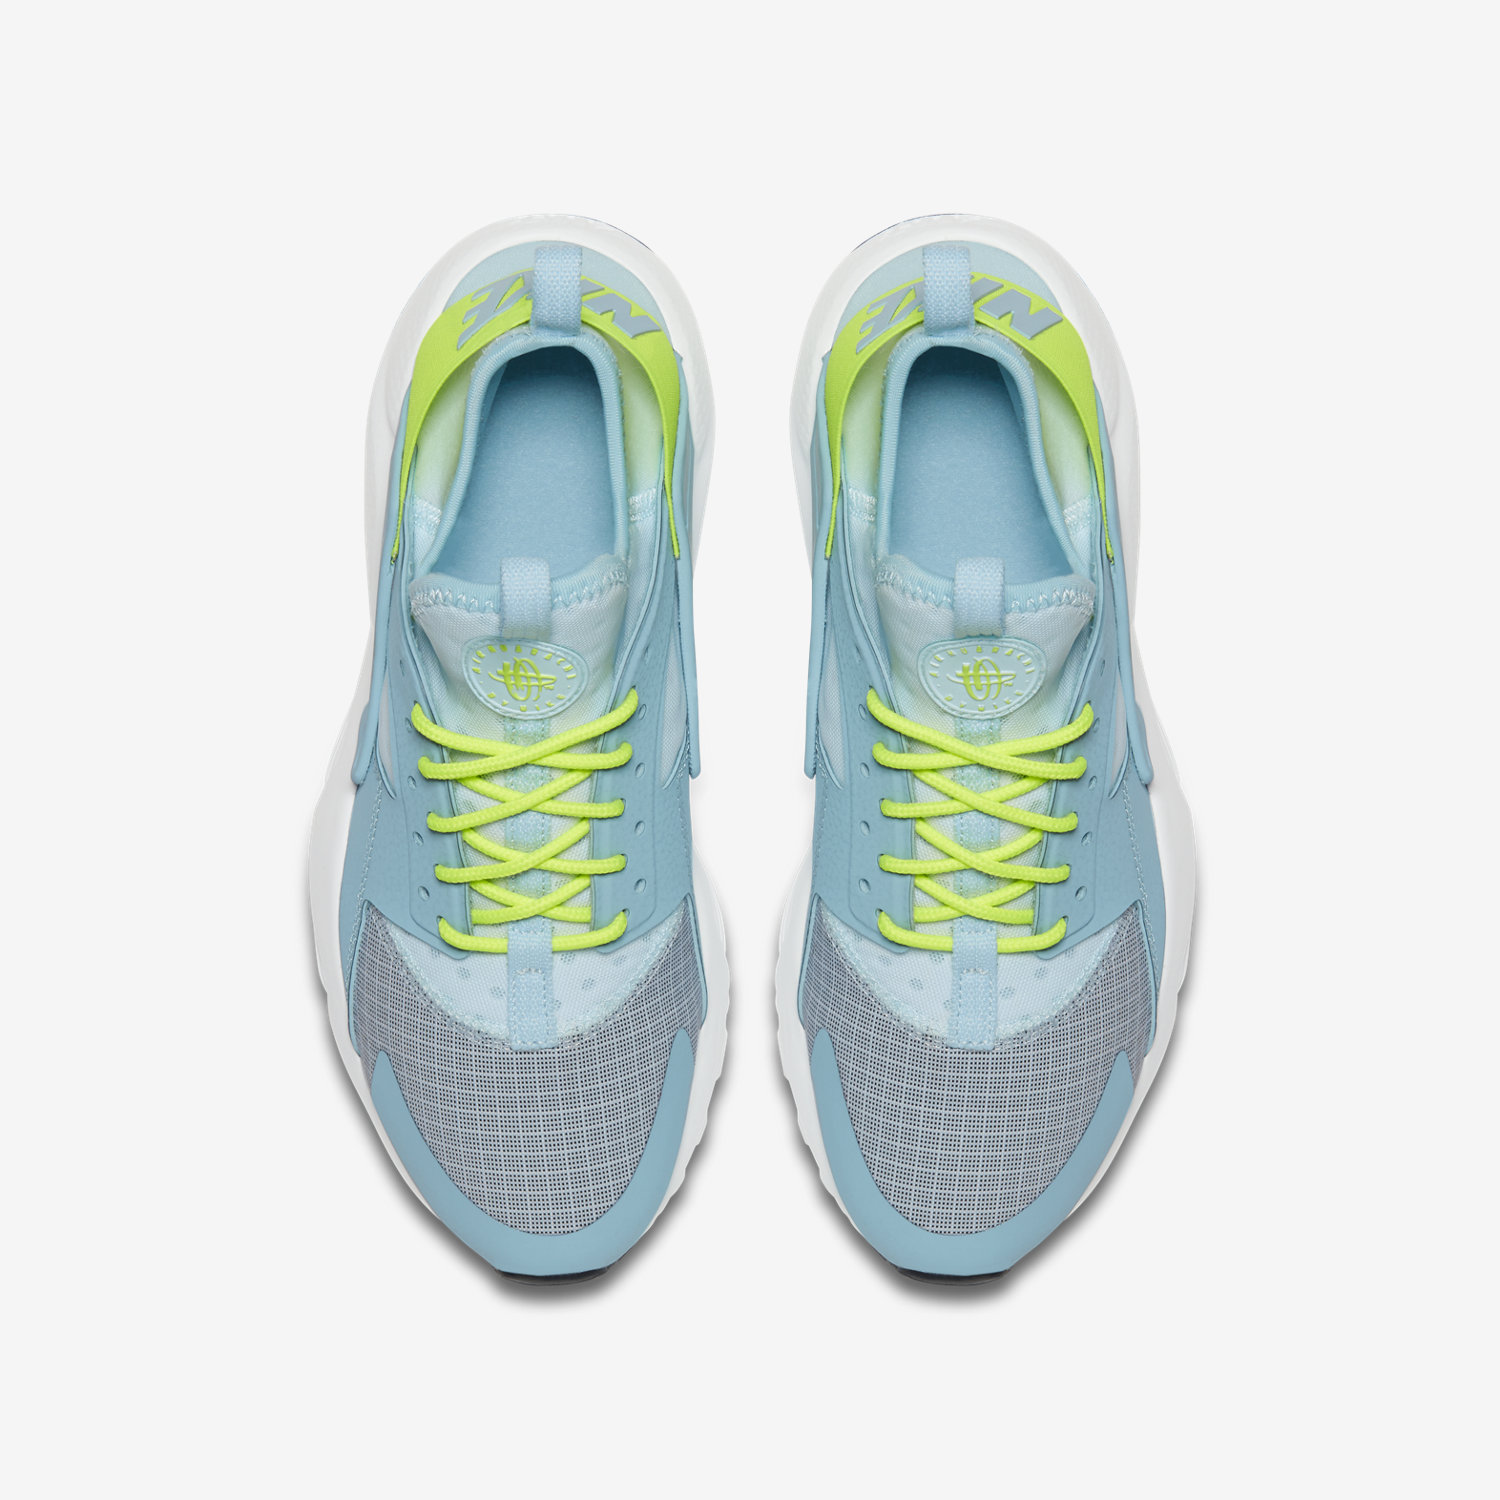 sports shoes 804f5 ee2ee Nike.com ID nike huarache ultra yellow Nike Air Huarache Women ...